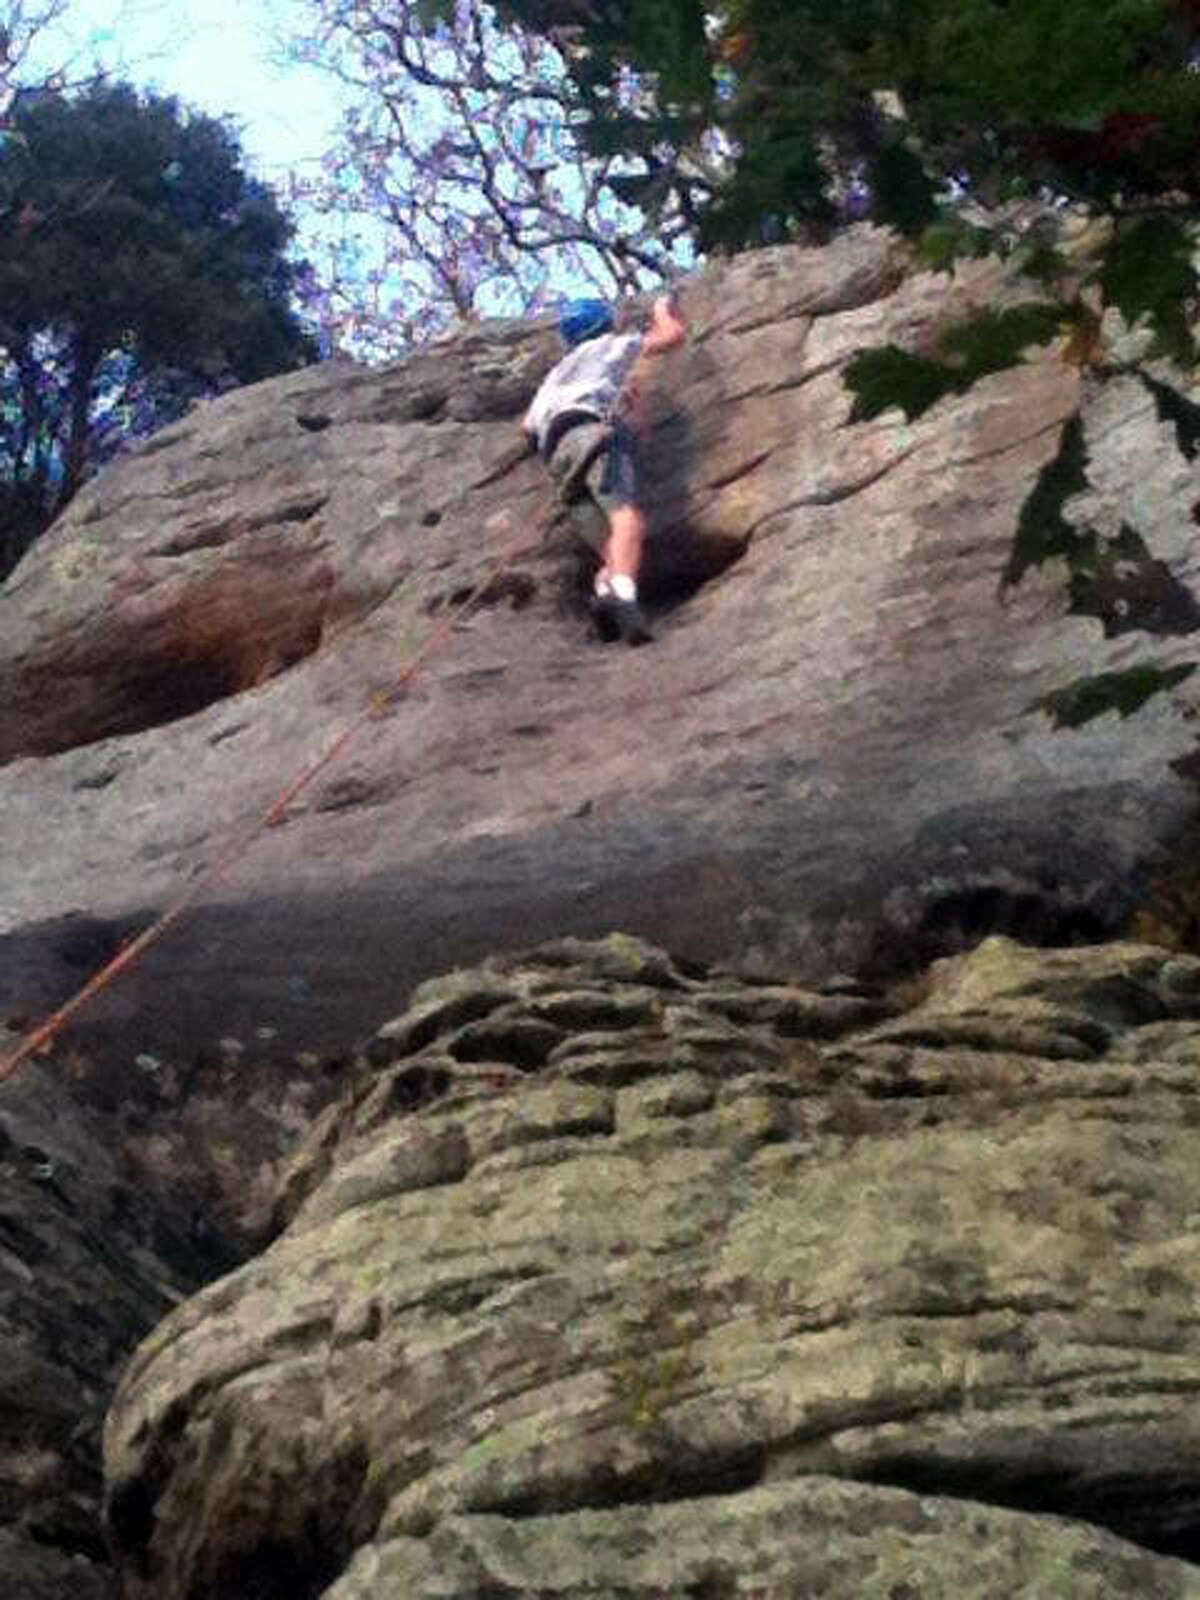 A boy scout of Edwardsville Troop 31 participates in rock climbing at a recent trip to Vertical Heartland Climbing School in Buncombe, Illinois.